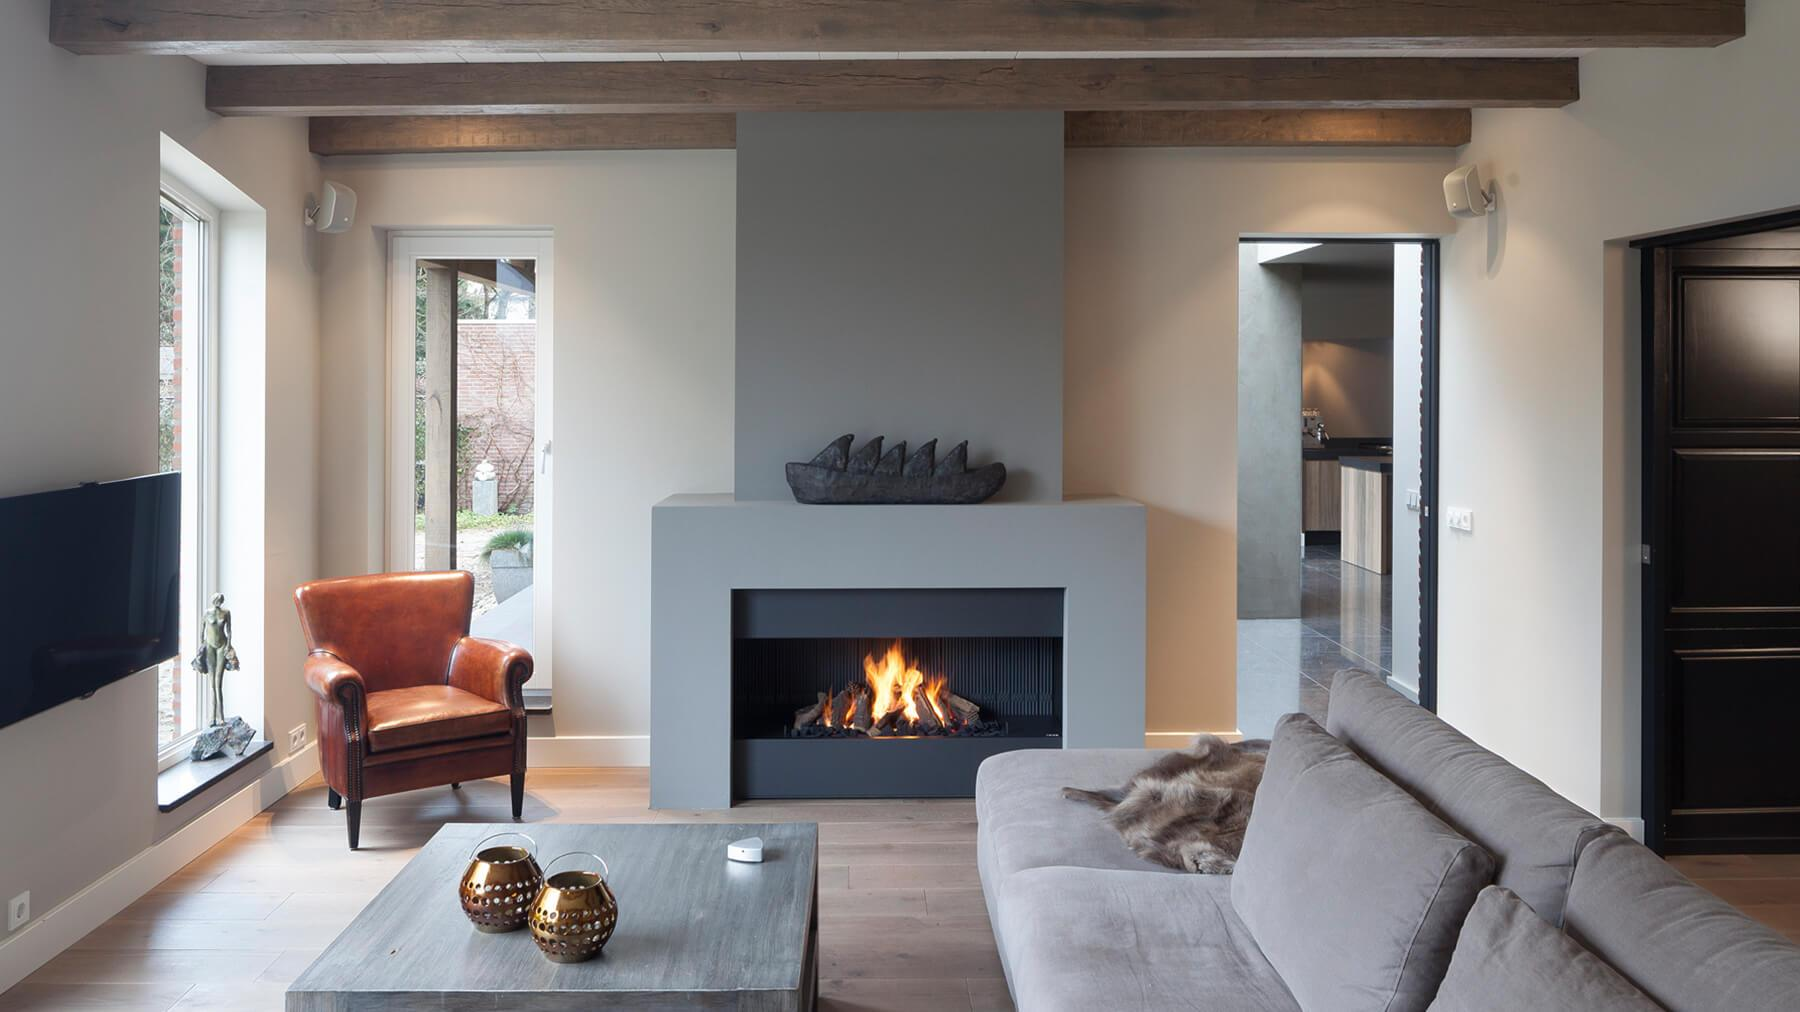 Contemporary fireplaces i designer fireplaces i luxury for Interior fireplaces designs